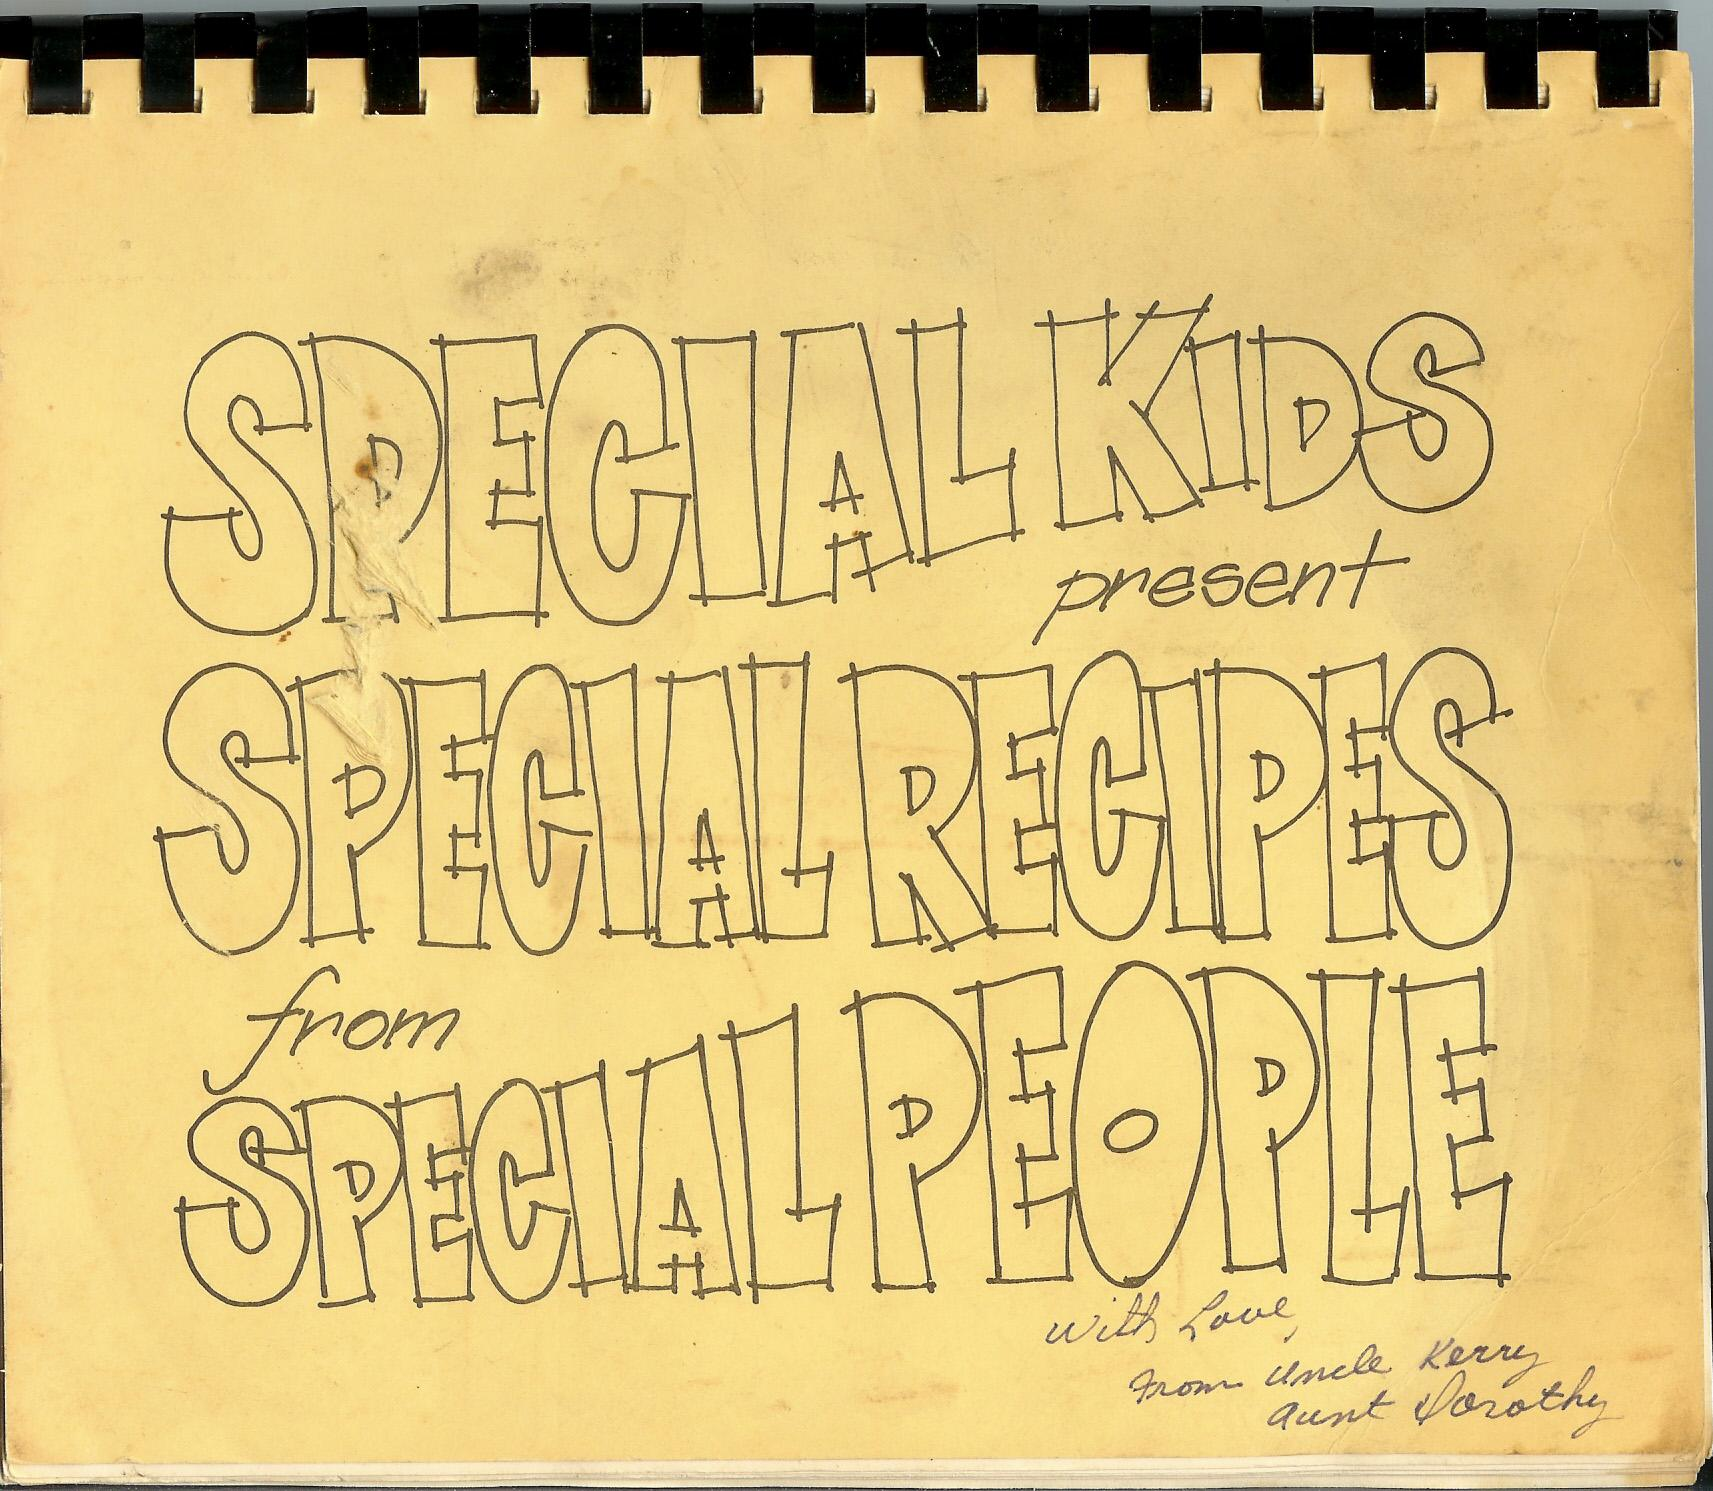 Special Kids Present Special Recipes from Special People Lori De La Motte Fair Softcover